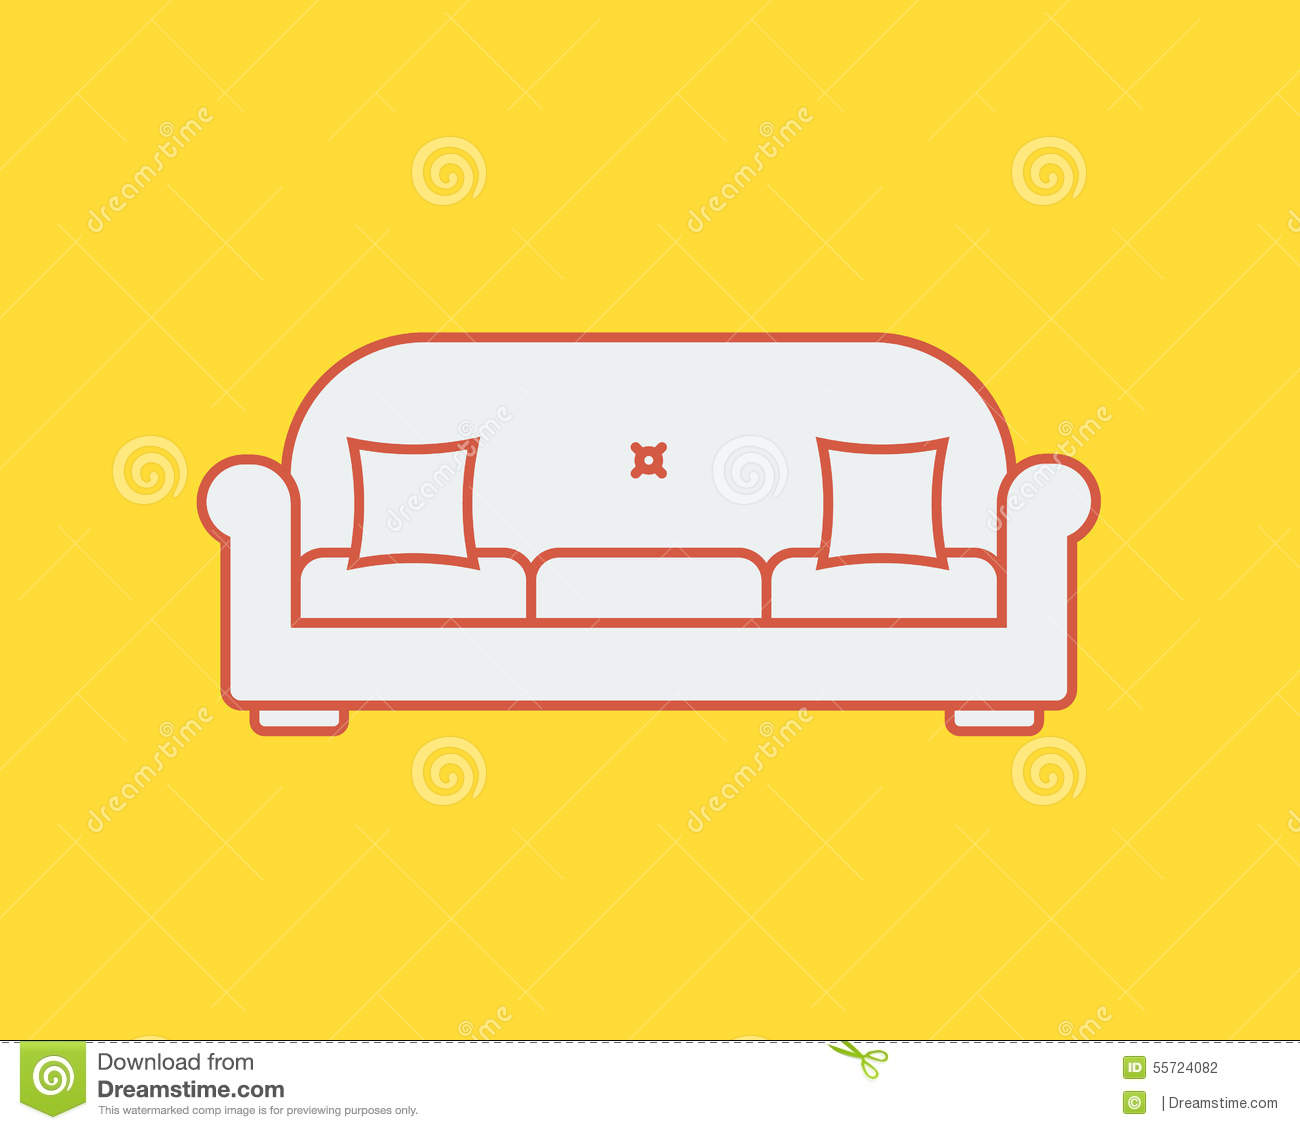 Vector Of Living Room Stock Vector Image Of Sofa: Sofa Line Icon Stock Vector. Image Of Illustration